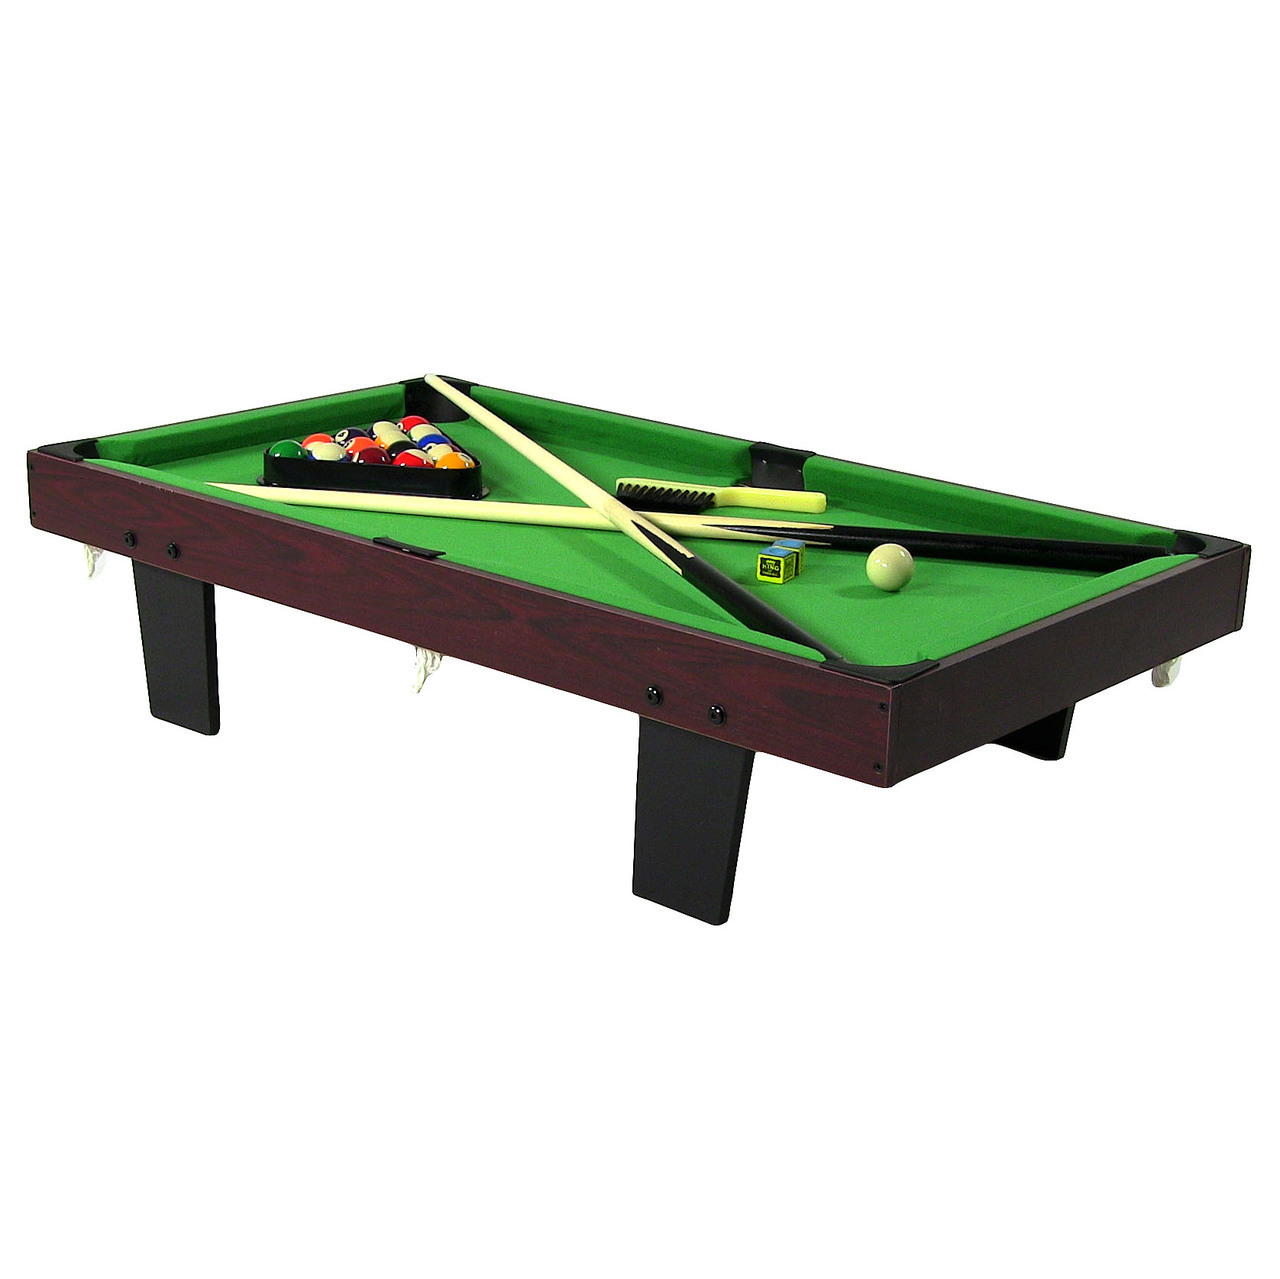 Sunnydaze 36 Inch Mini Tabletop Pool Table With Triangle, Balls, Cues, Chalk